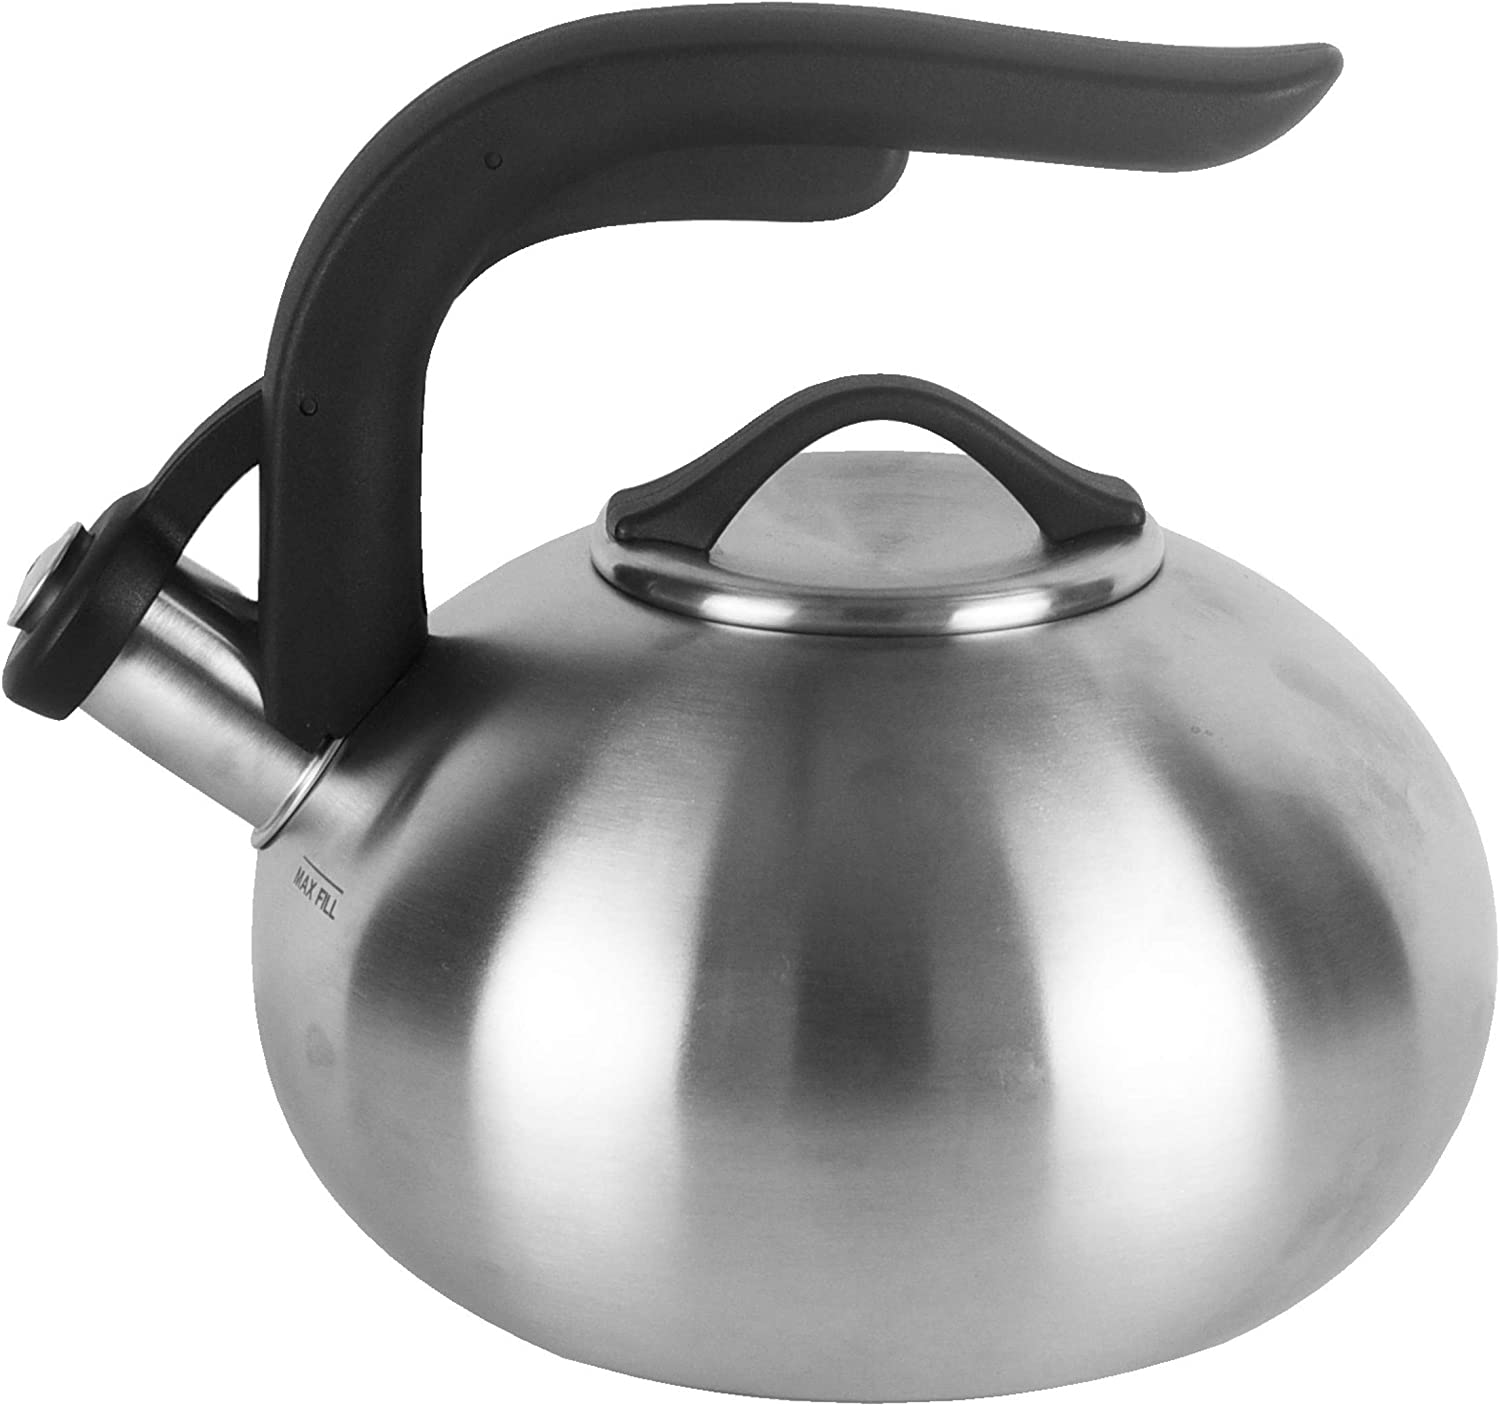 Copco 5216825 Arc Brushed Tea Kettle, 1.8 quart, Stainless Steel